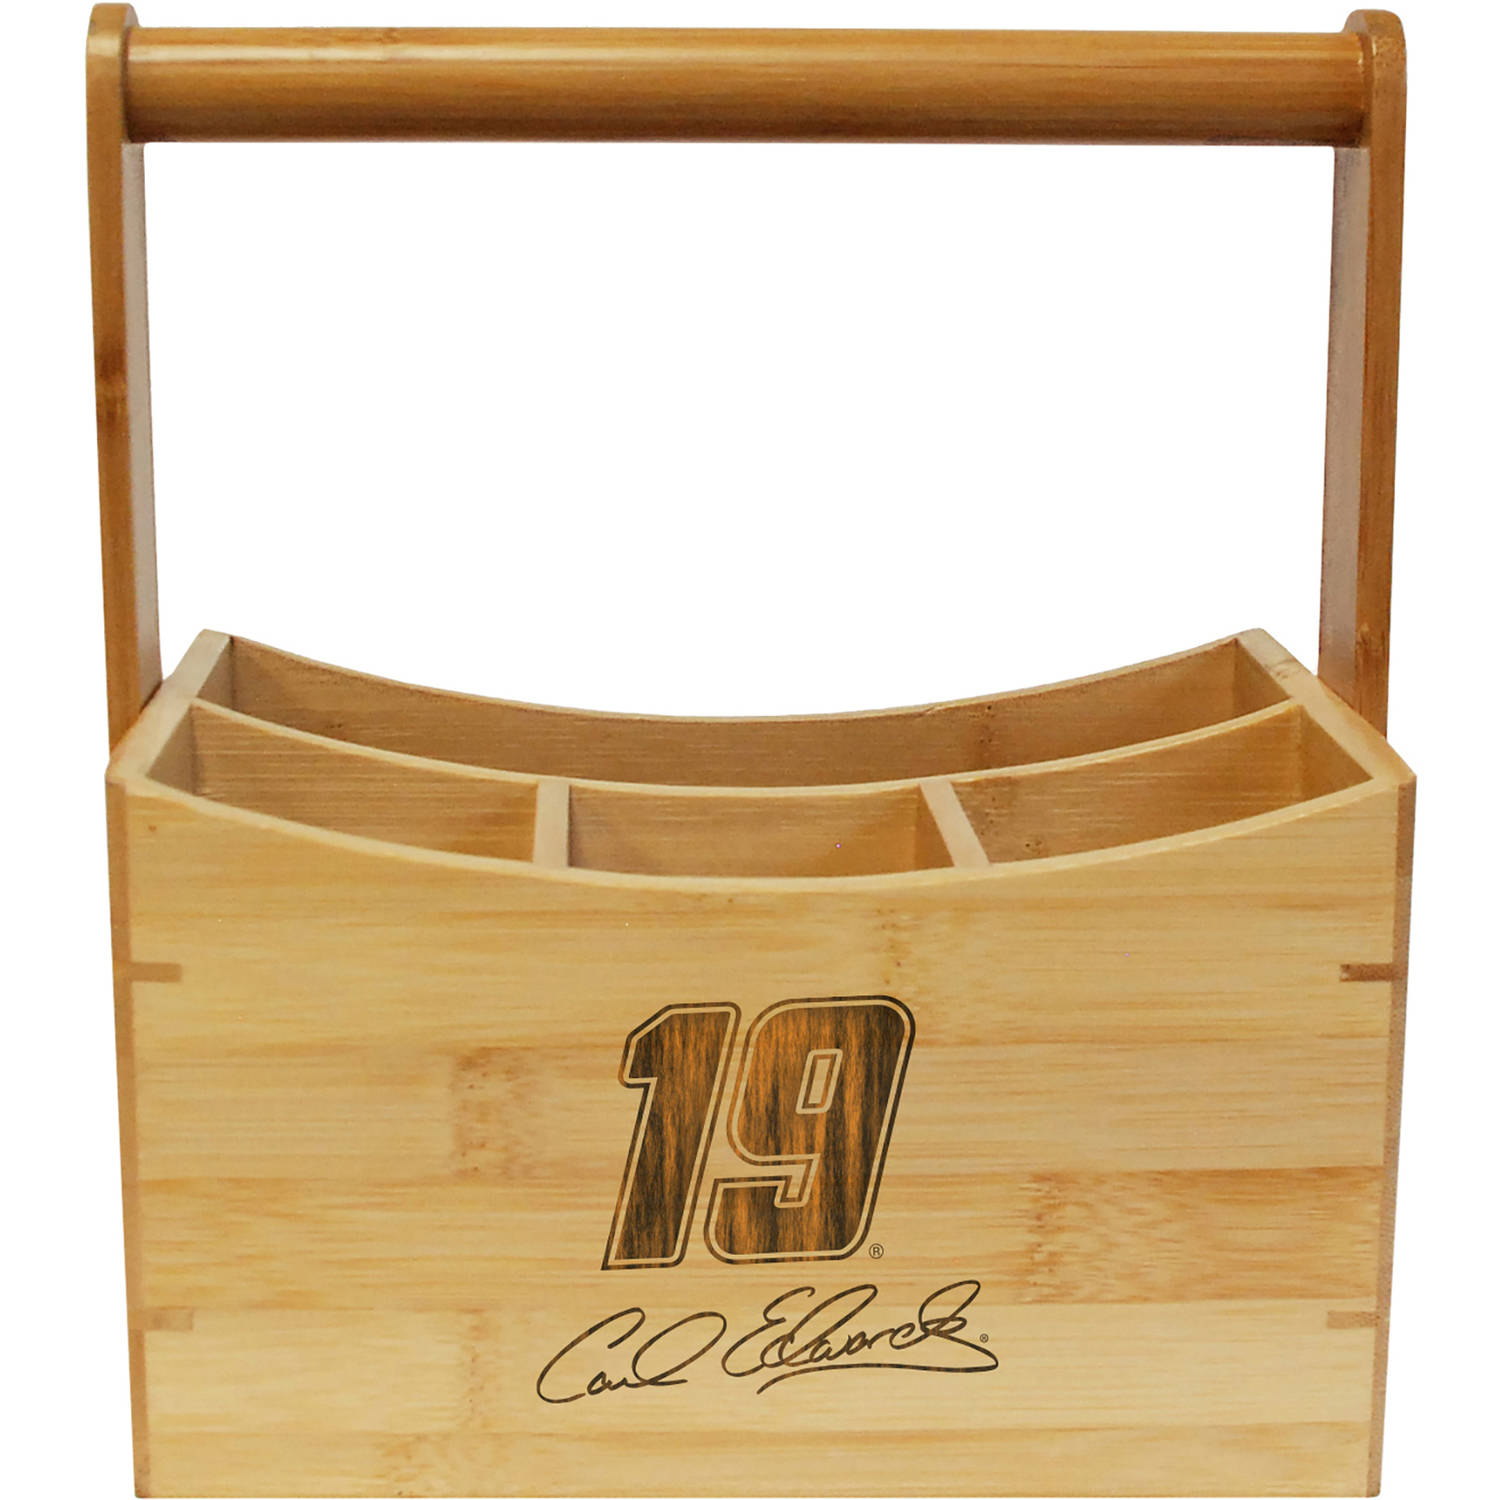 Carl Edwards Utensil Caddy